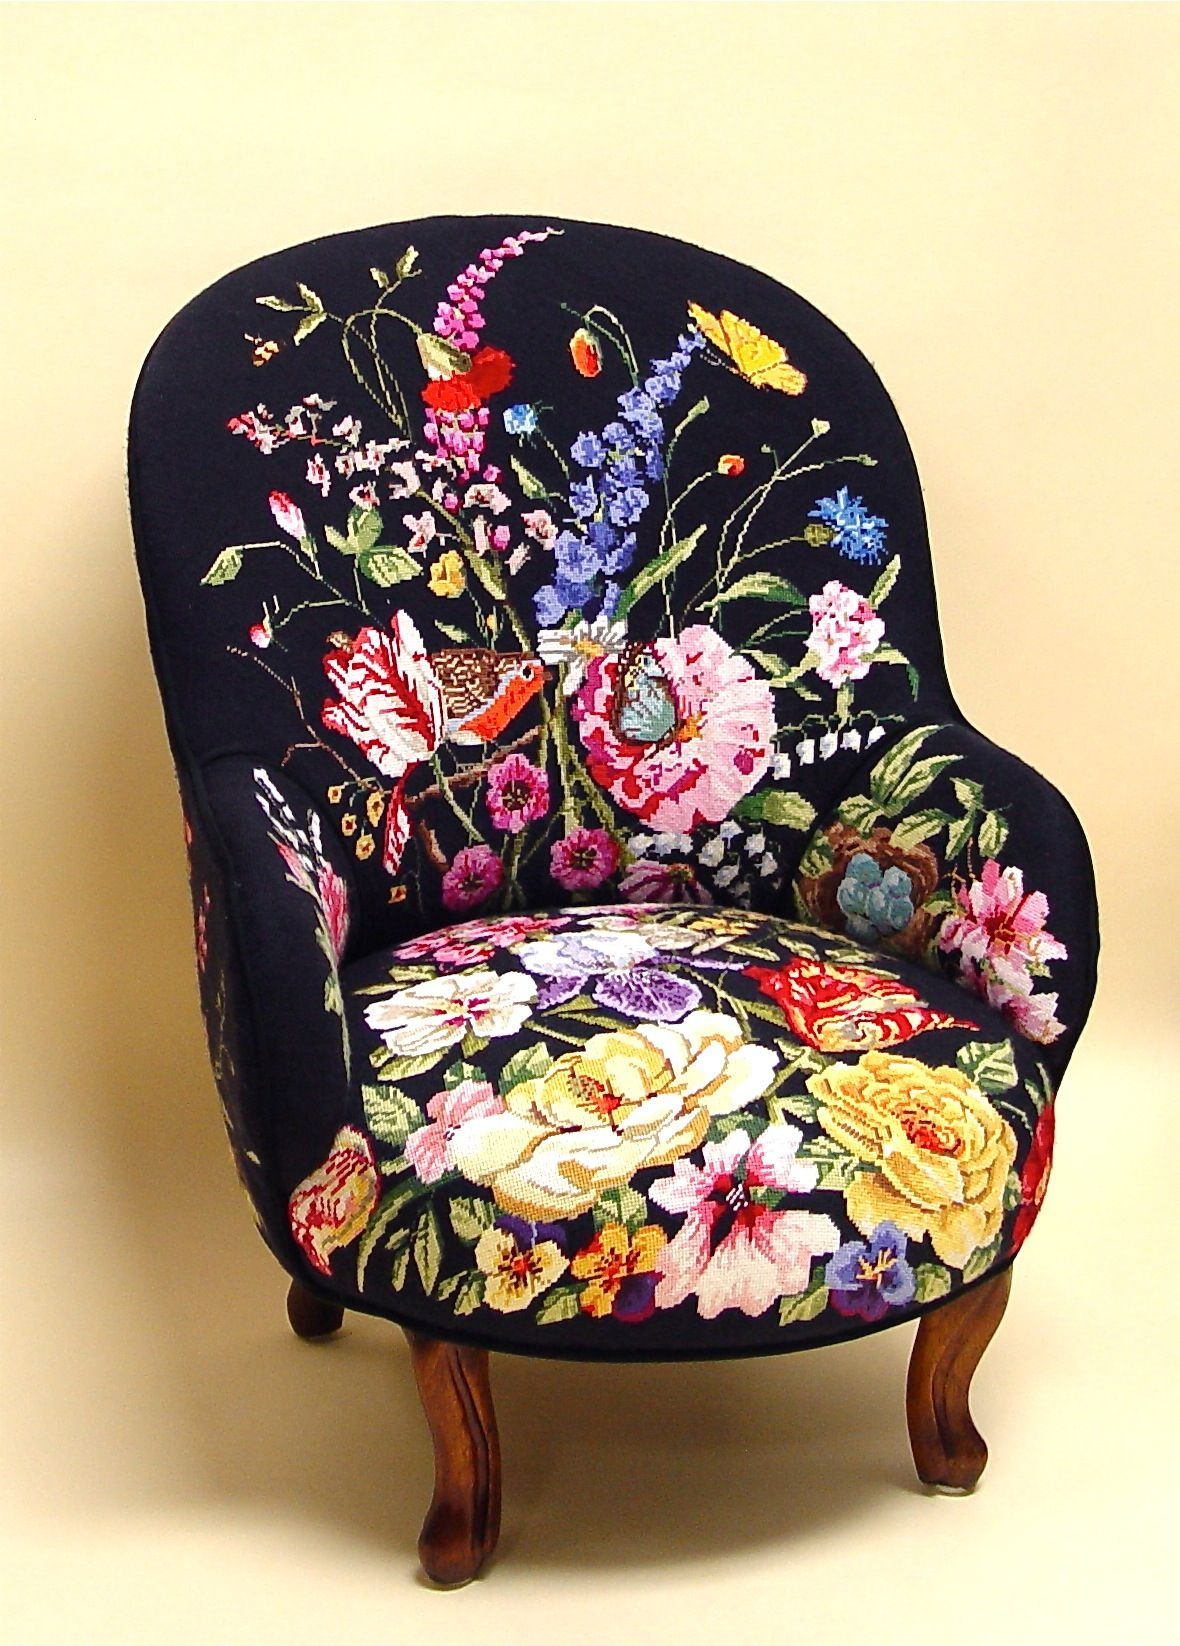 Blumensessel Needlepoint Armchair In Sane So Gorgeous For The Home